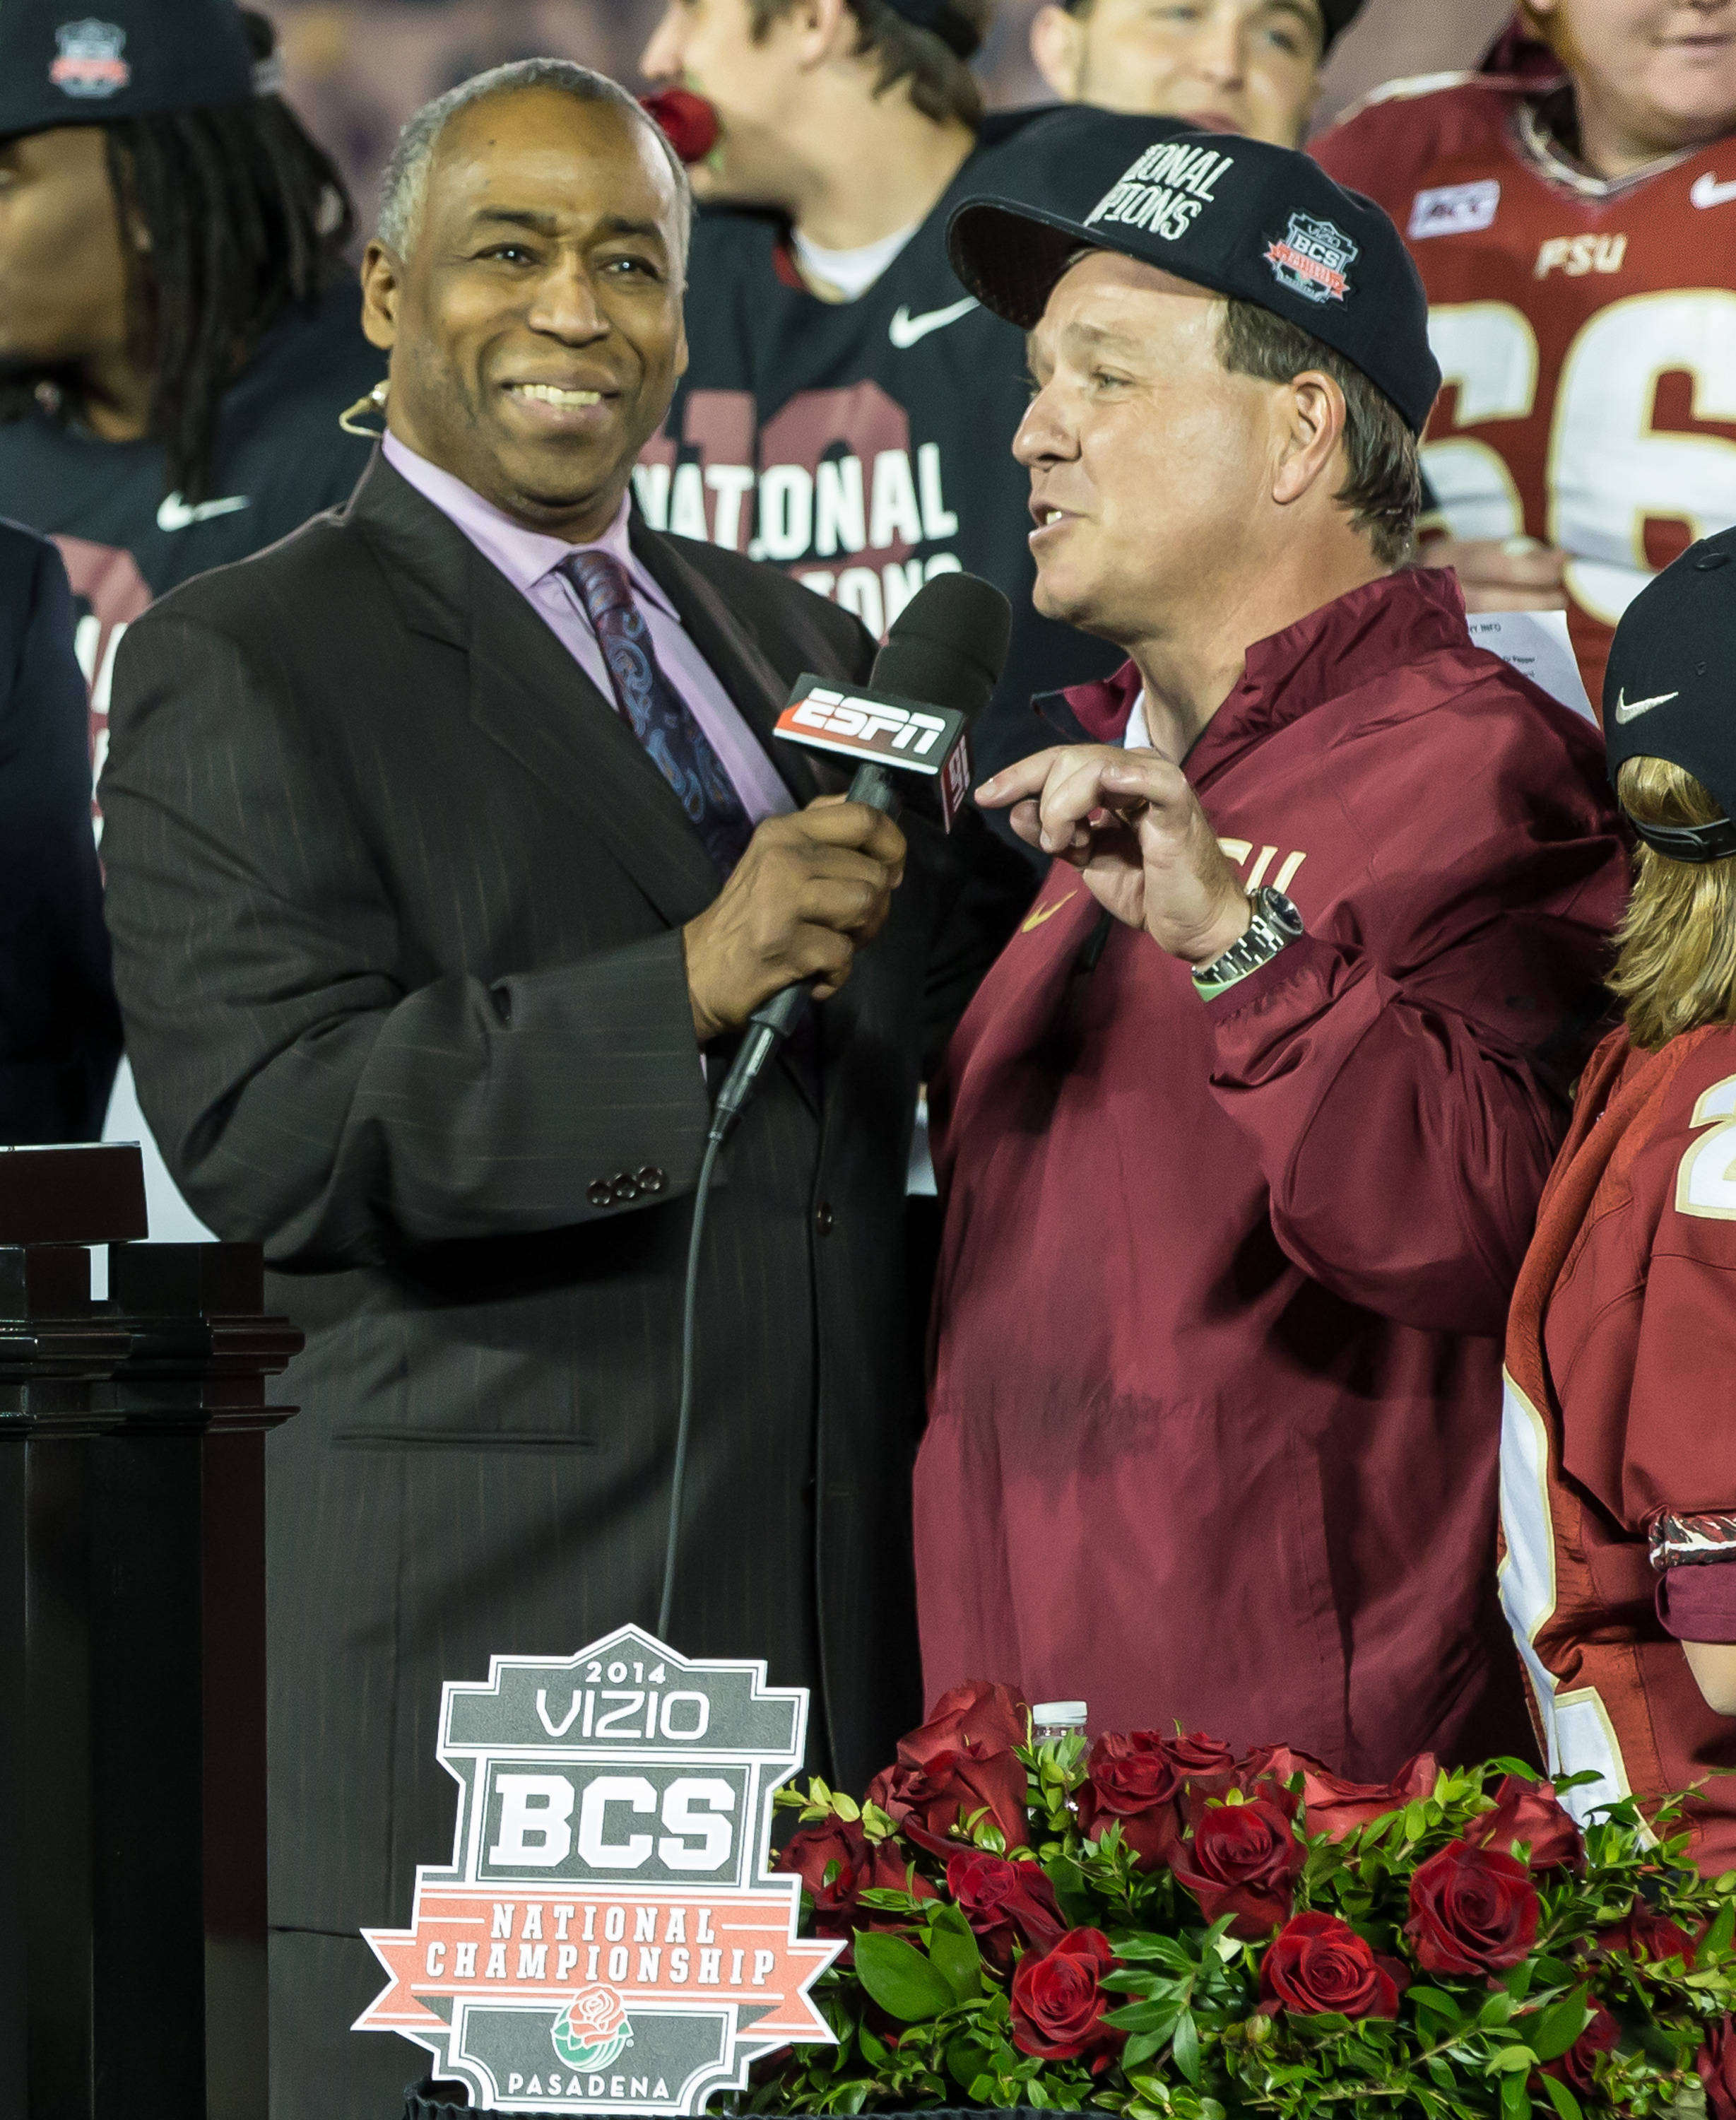 Jimbo Fisher is interviewed by ESPN's John Saunders.